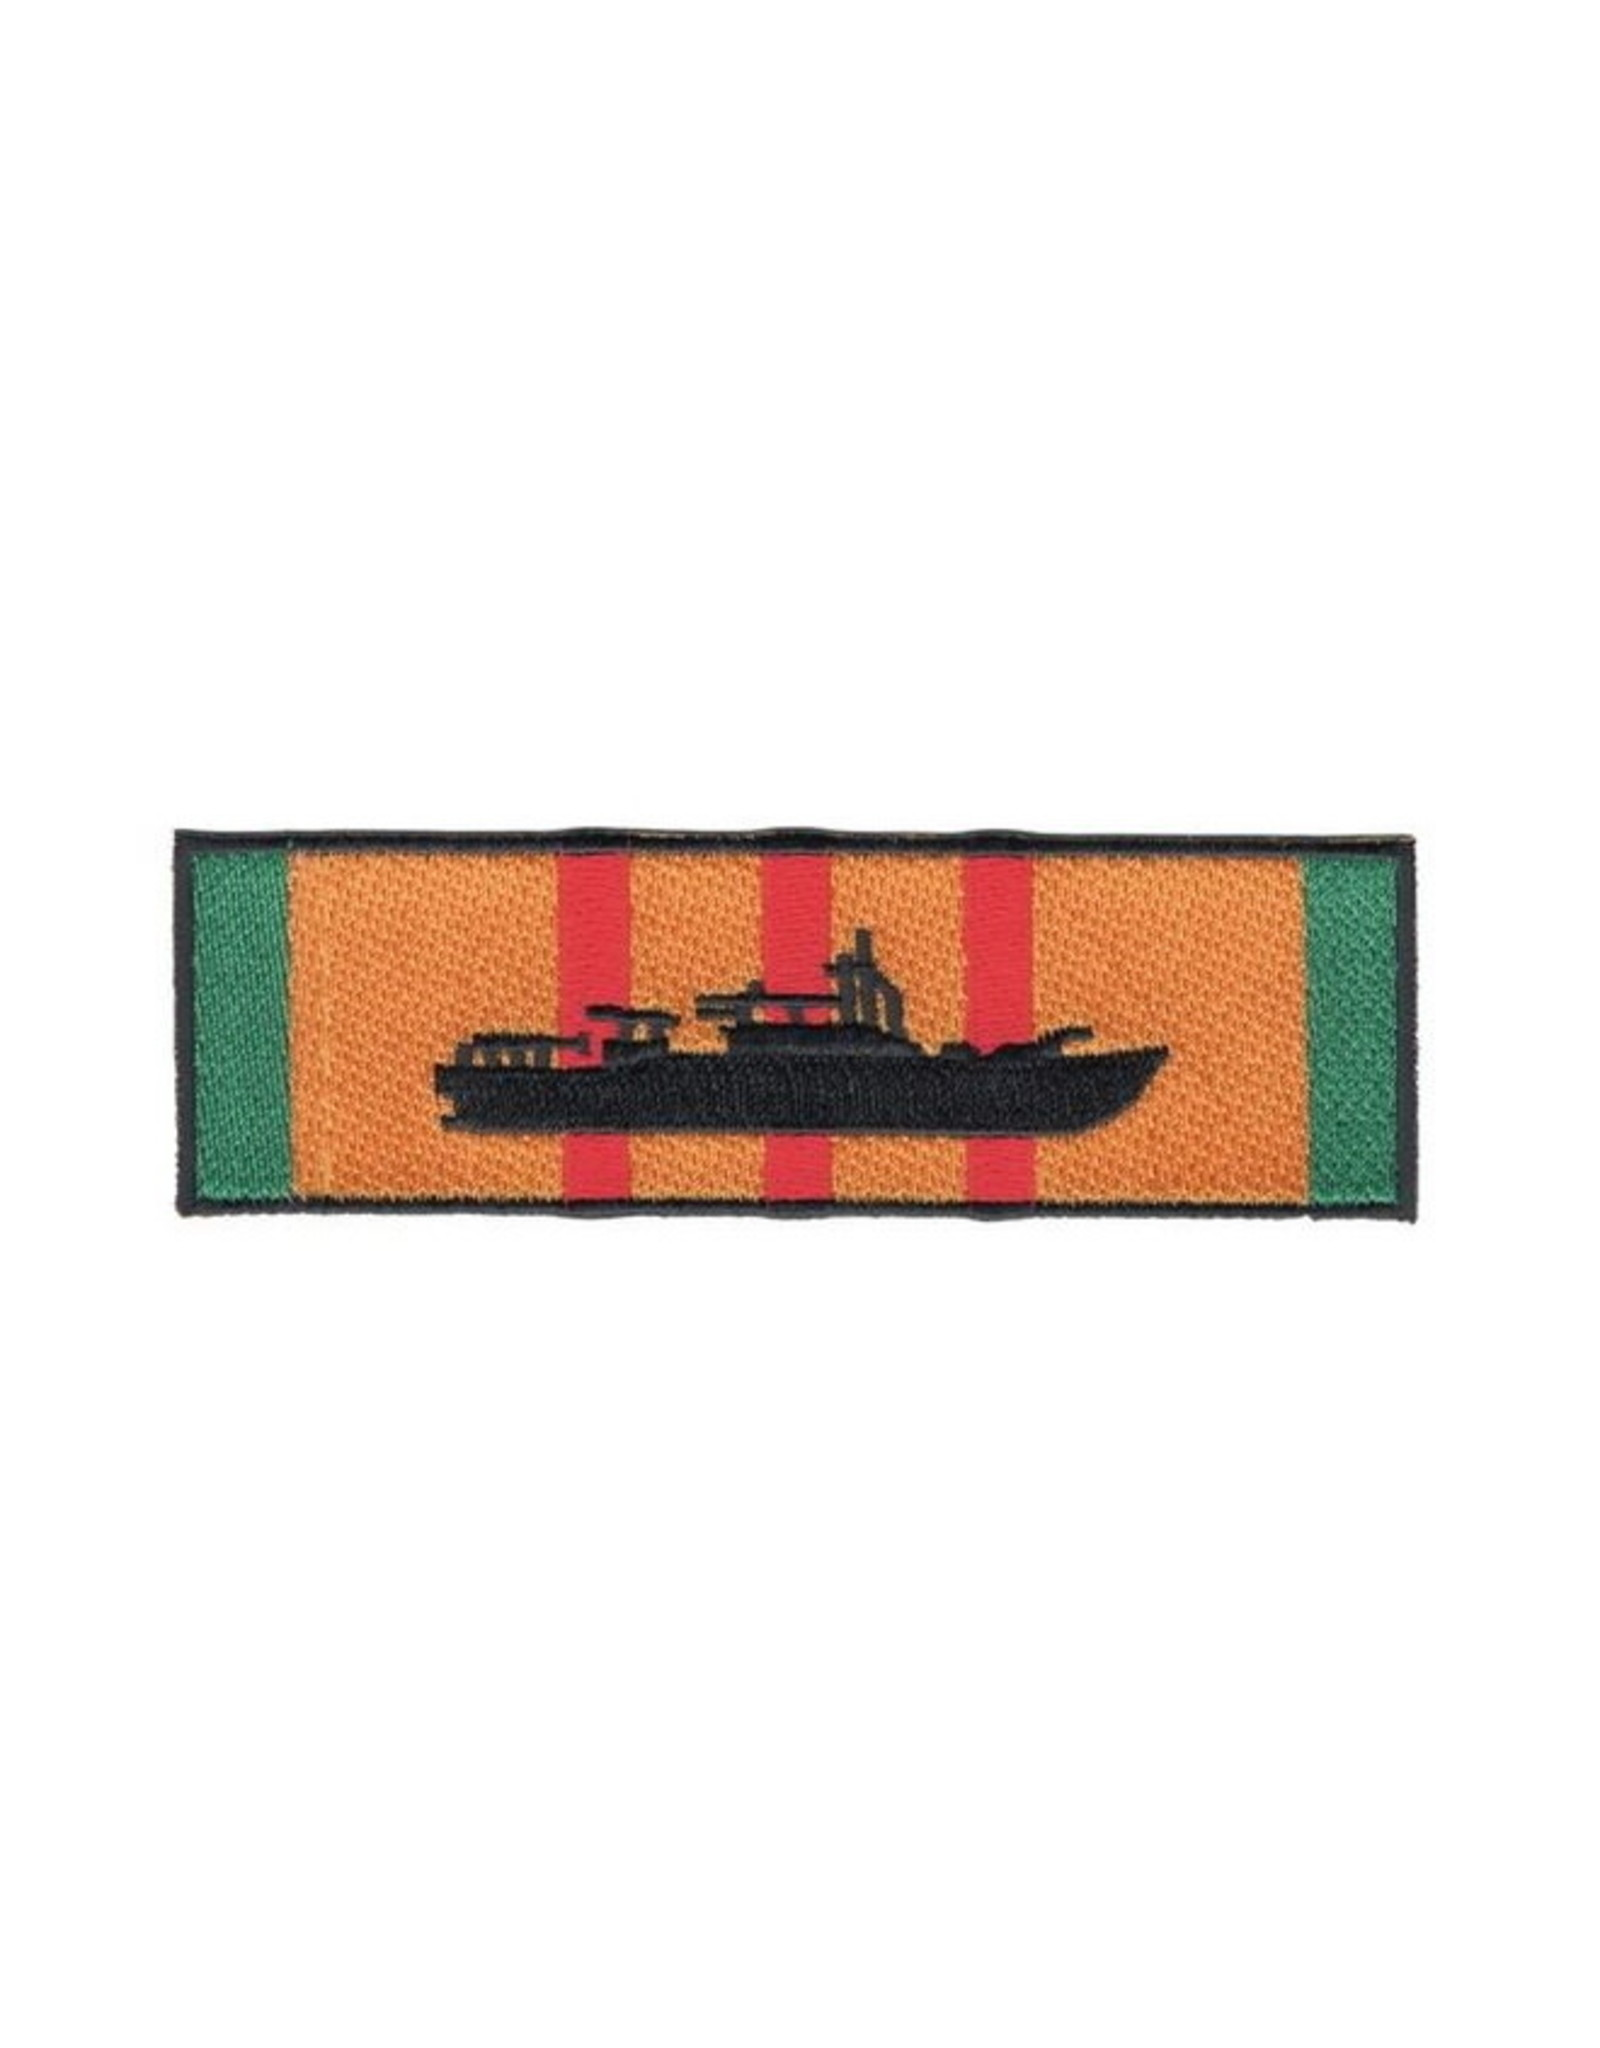 "MidMil Embroidered Patrol Boat River (PBR) on Vietnam Service Ribbon Patch 4.5"" wide x 1.4"" high"